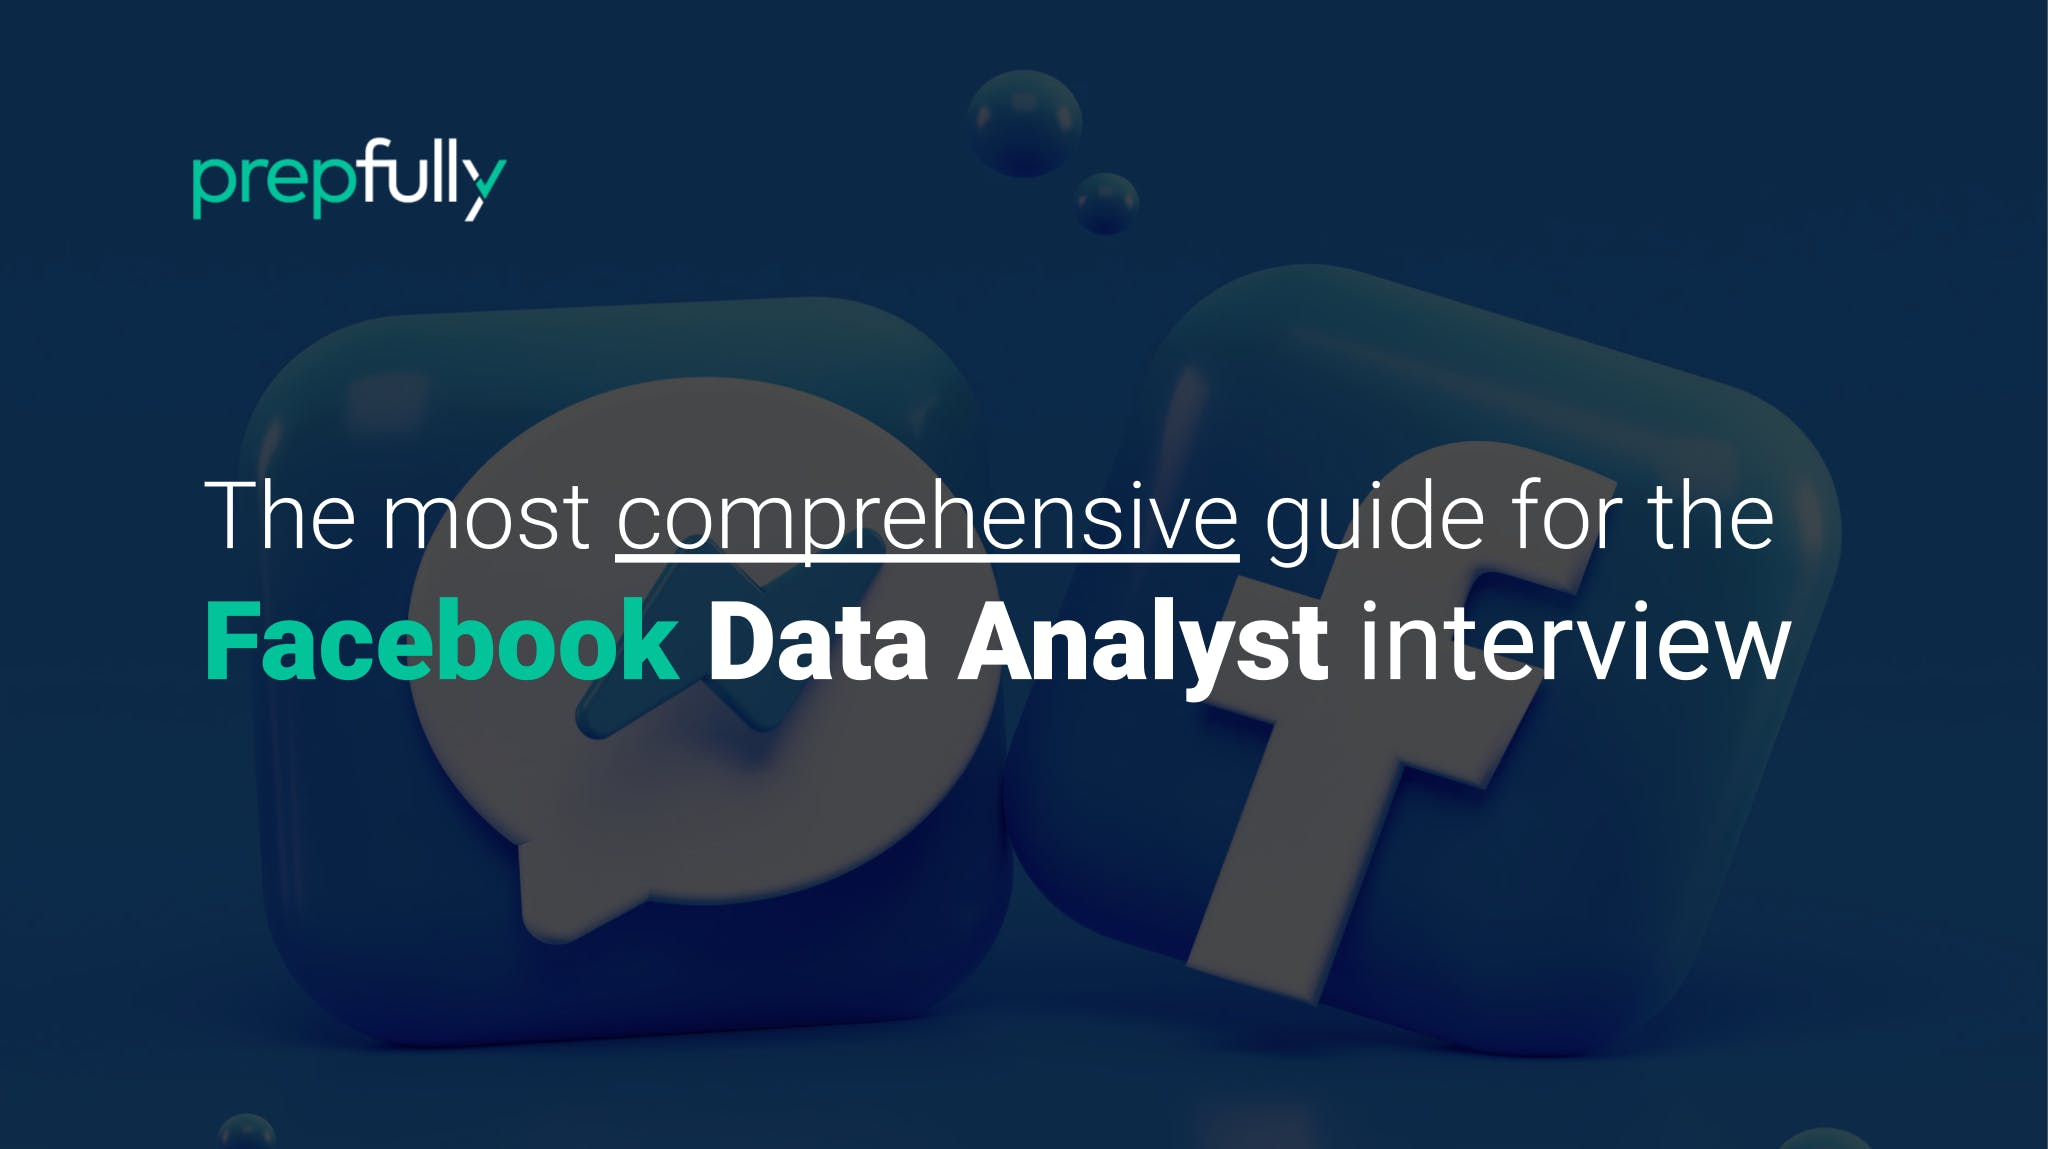 Interview guide for Facebook Data Analyst